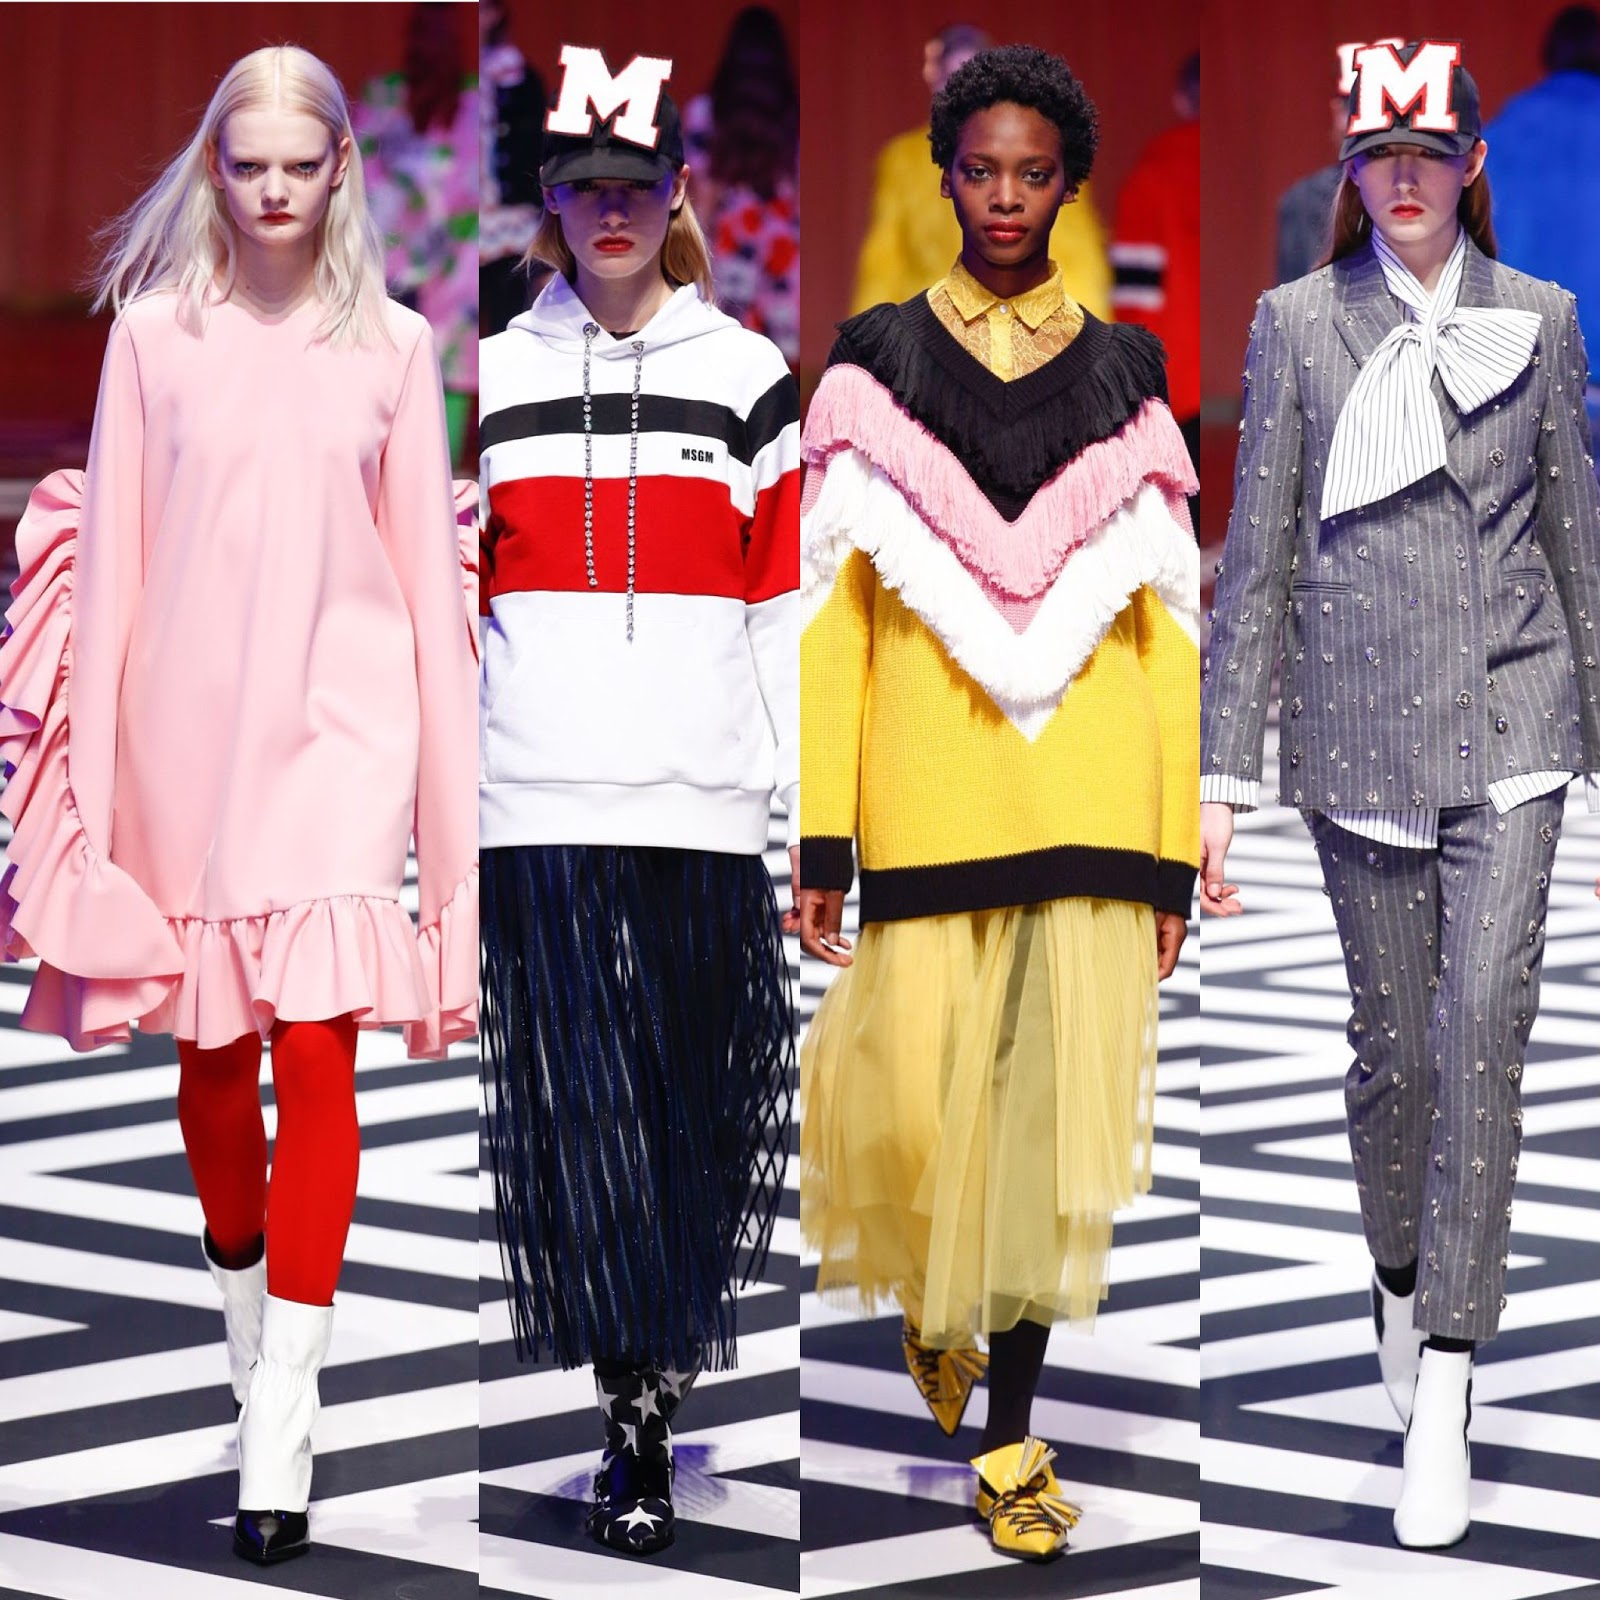 milan fashion week, cameramoda, milan fashion, milan fashion week aw 17, milan fashion week aw 17 review, mfw show review, mfw aw 17, au jour le jour review, au jour le jour aw17, msgm review, msgm aw 17.